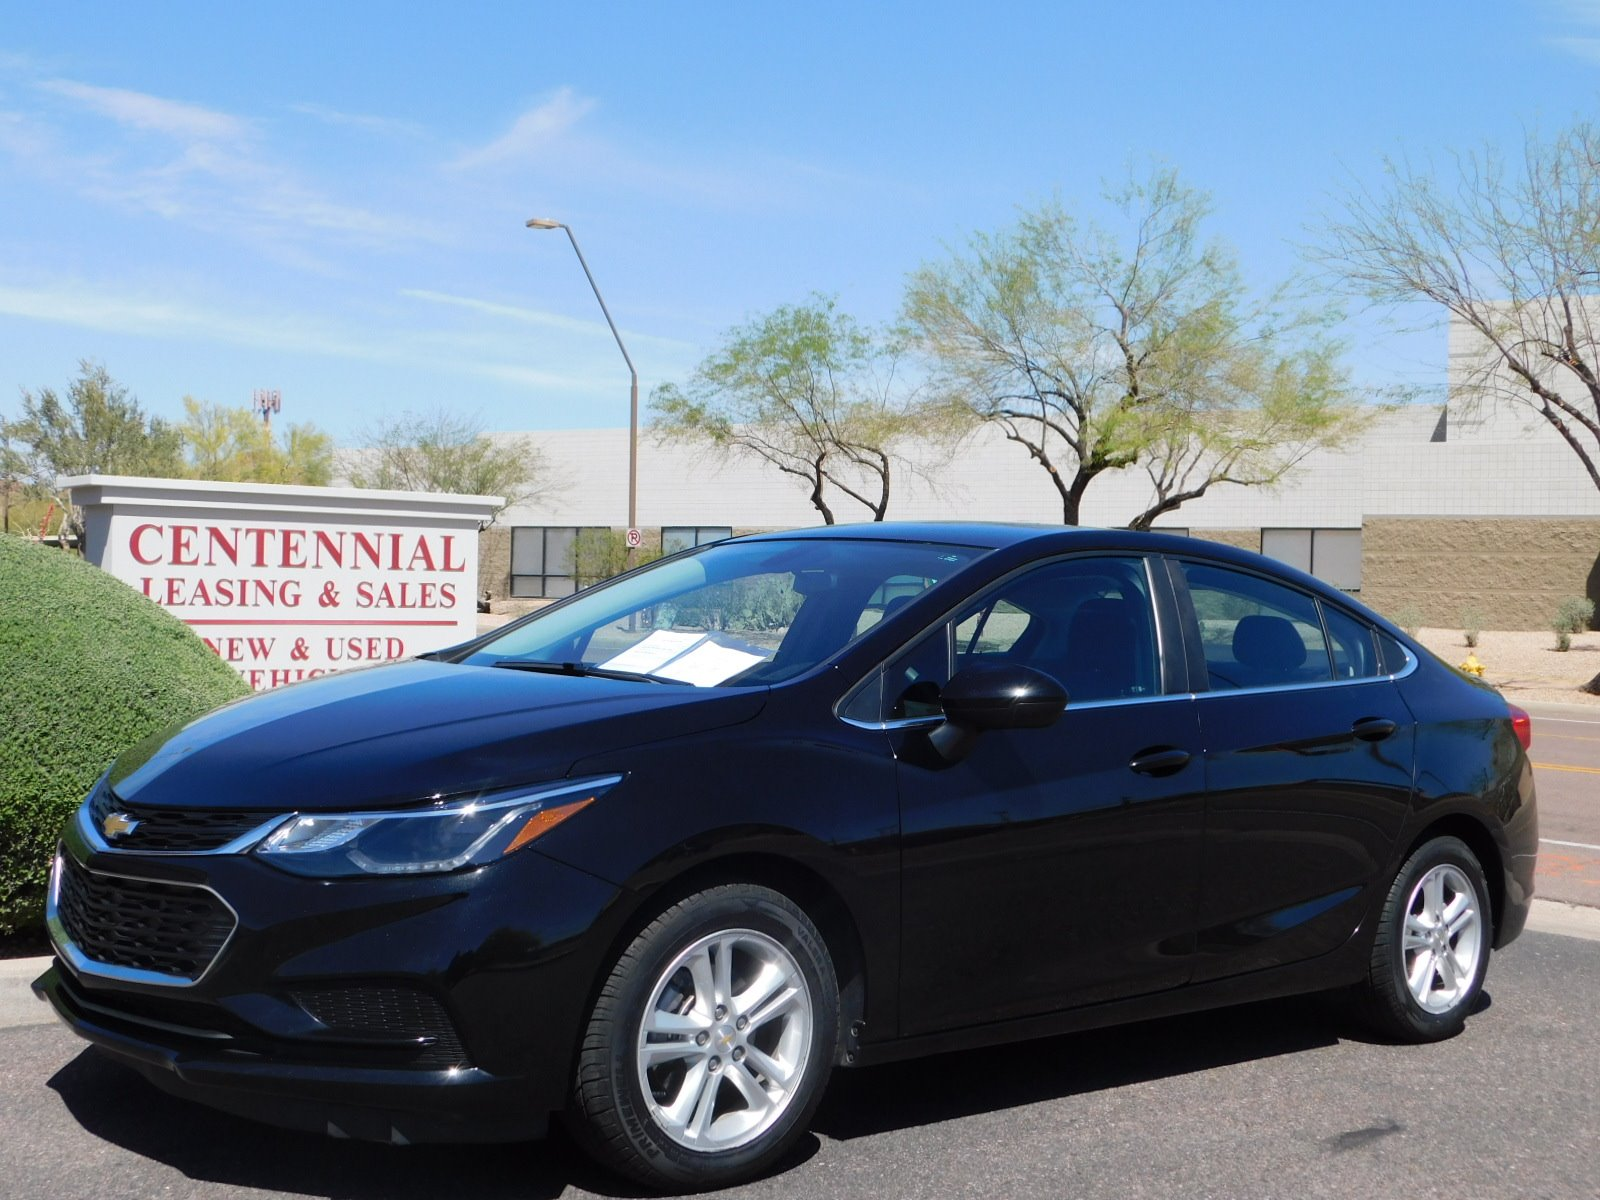 Phoenix Used Cars: All New & Used Car Listings for Arizona.